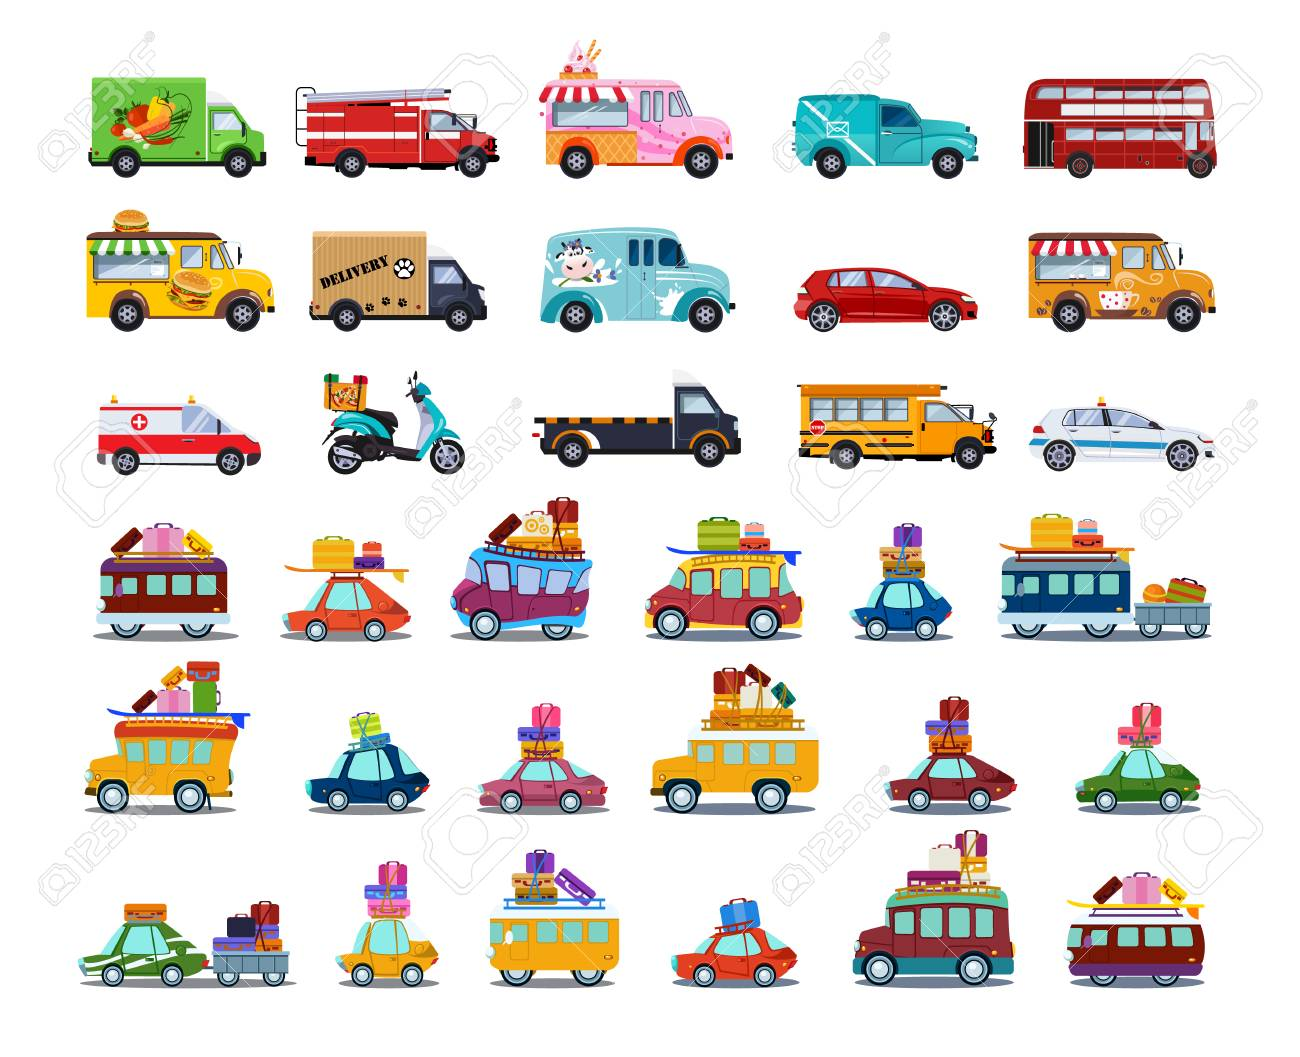 Cute City Transport Set, Colorful Childish Cars and Vehicles Vector Illustration on White Background. - 124687861